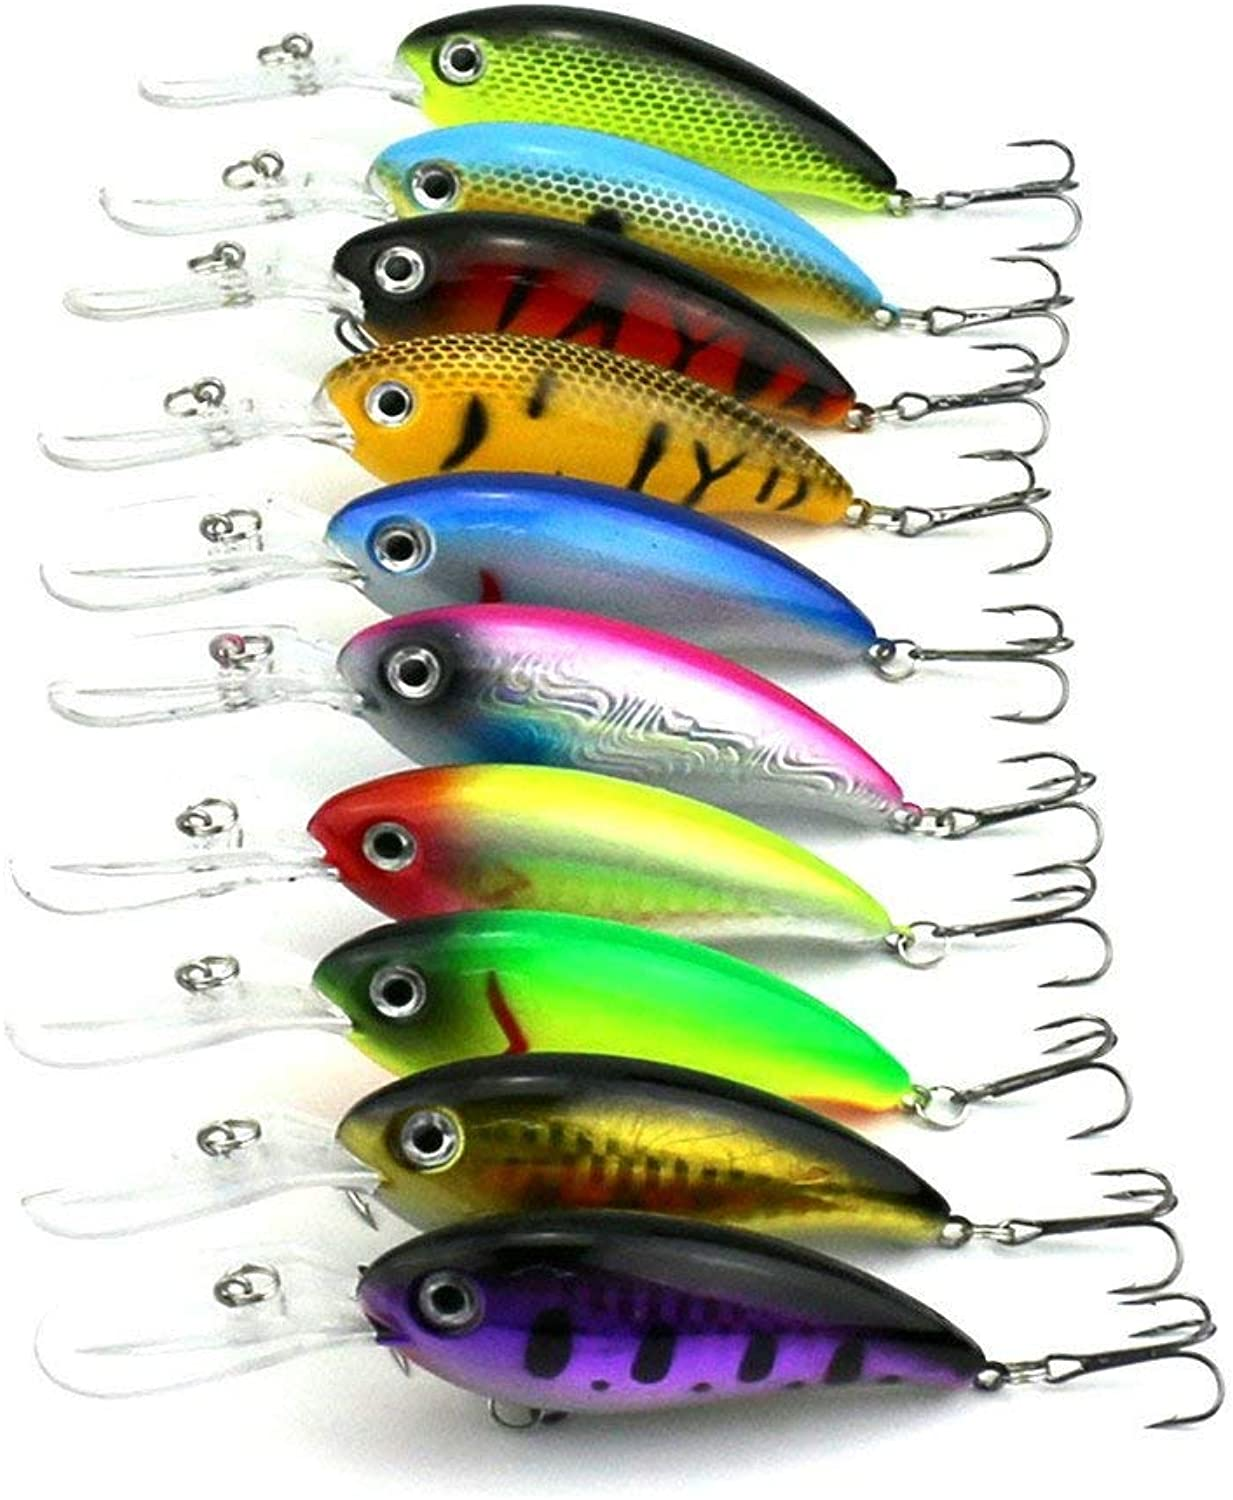 Promotion  Lot 10cs colors Fishing Lures Crankbait Minnow Hooks Crank Baits 10cm 14g Lure topwater